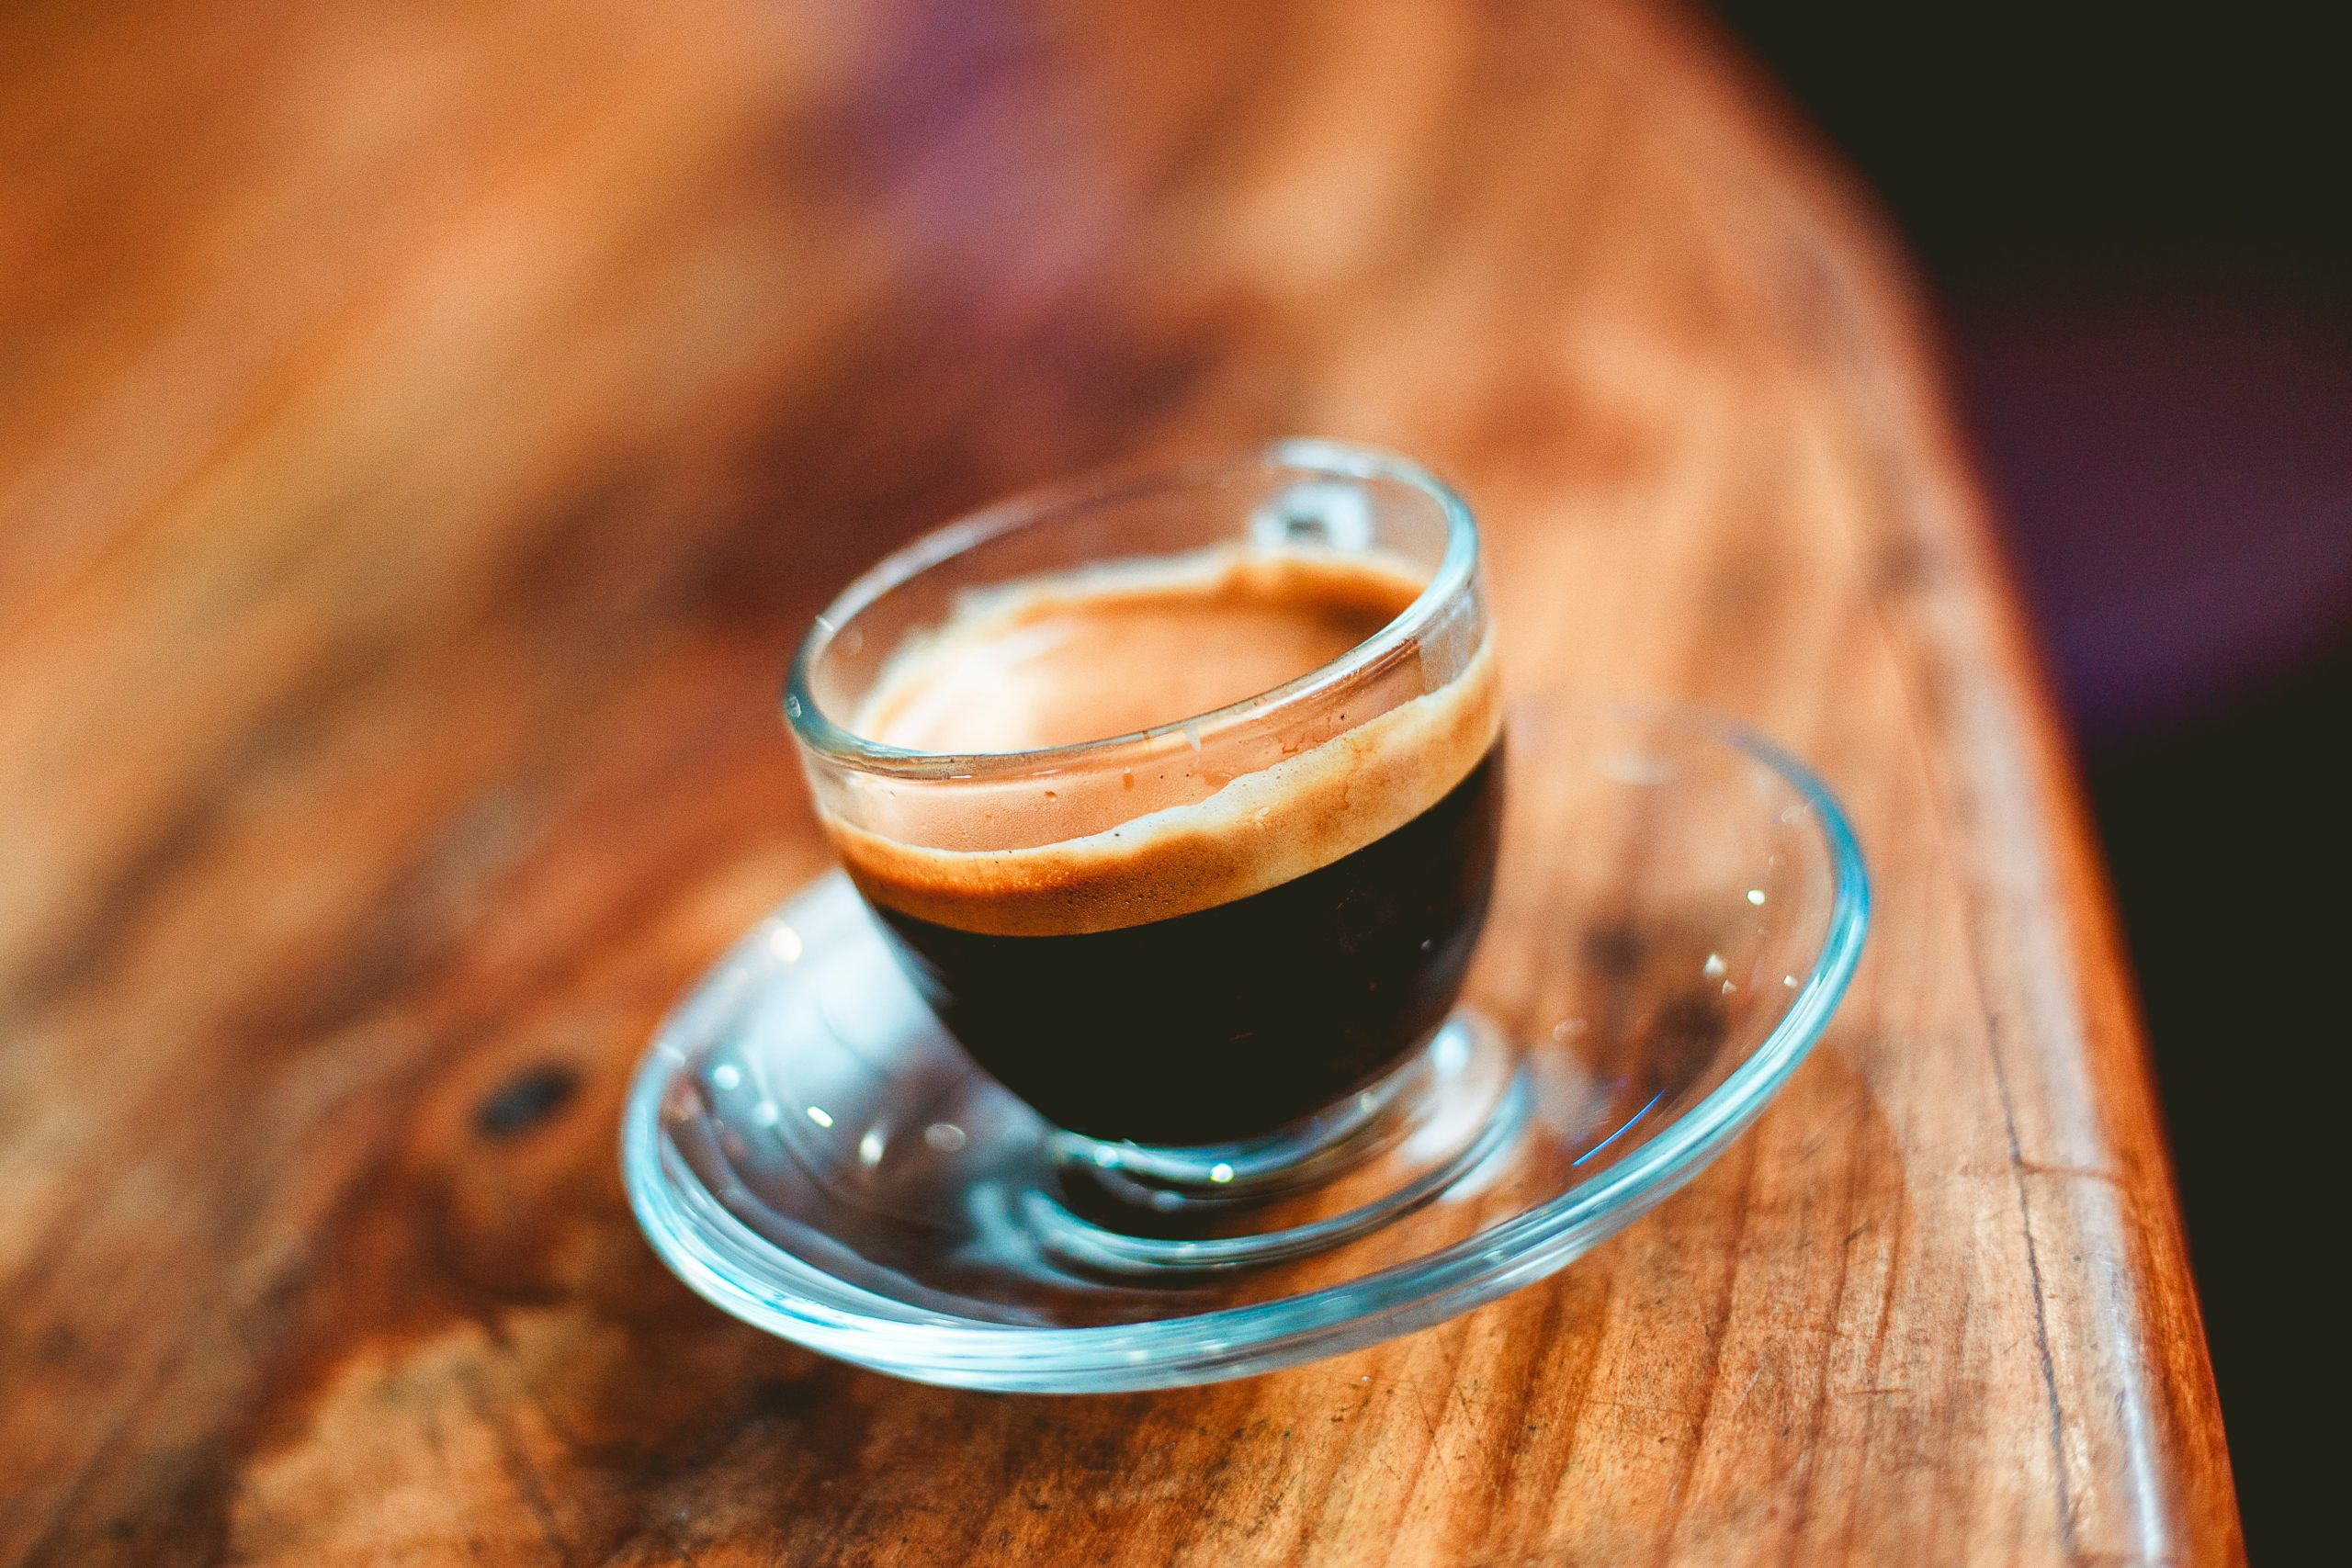 What Is a Ristretto Shot